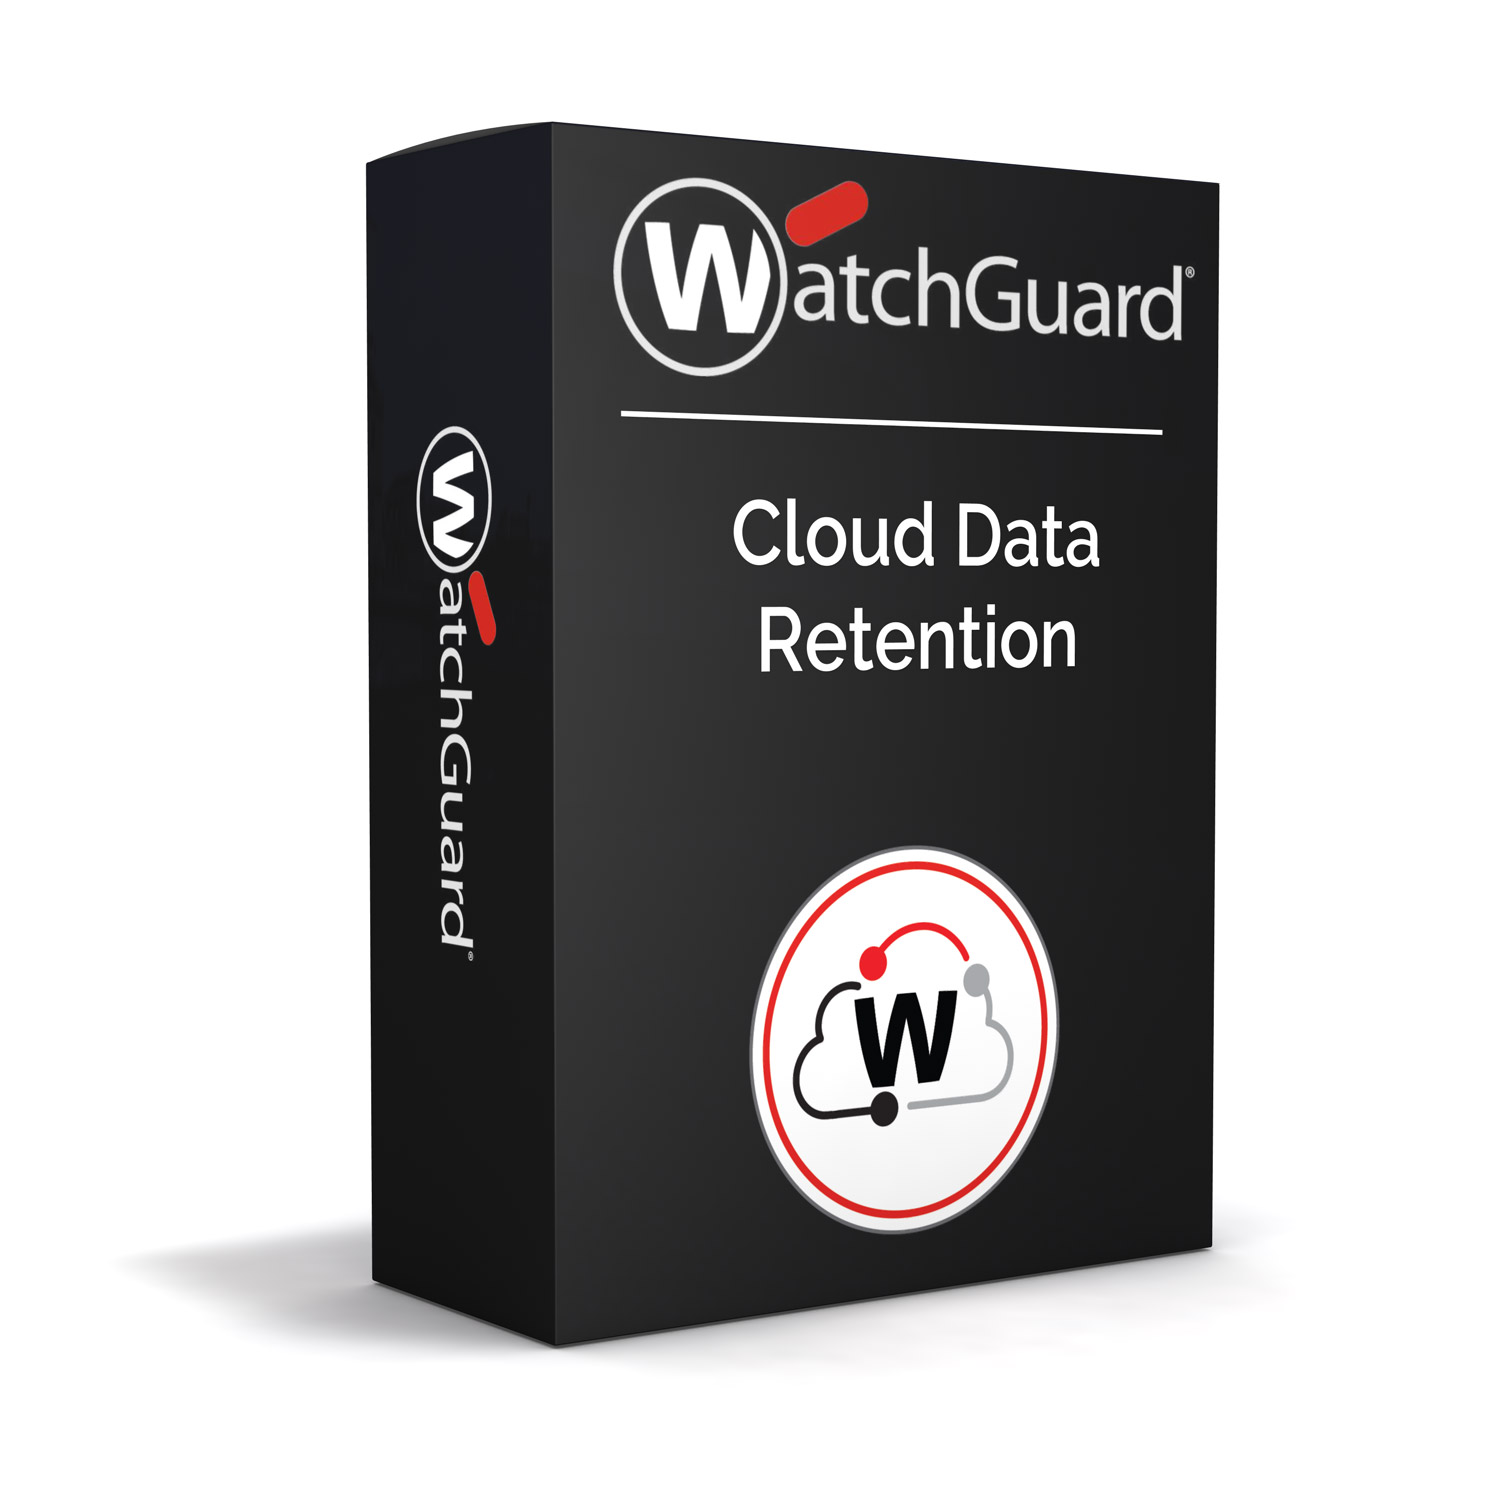 WatchGuard Cloud 1-month data retention for T70 - 3-yr